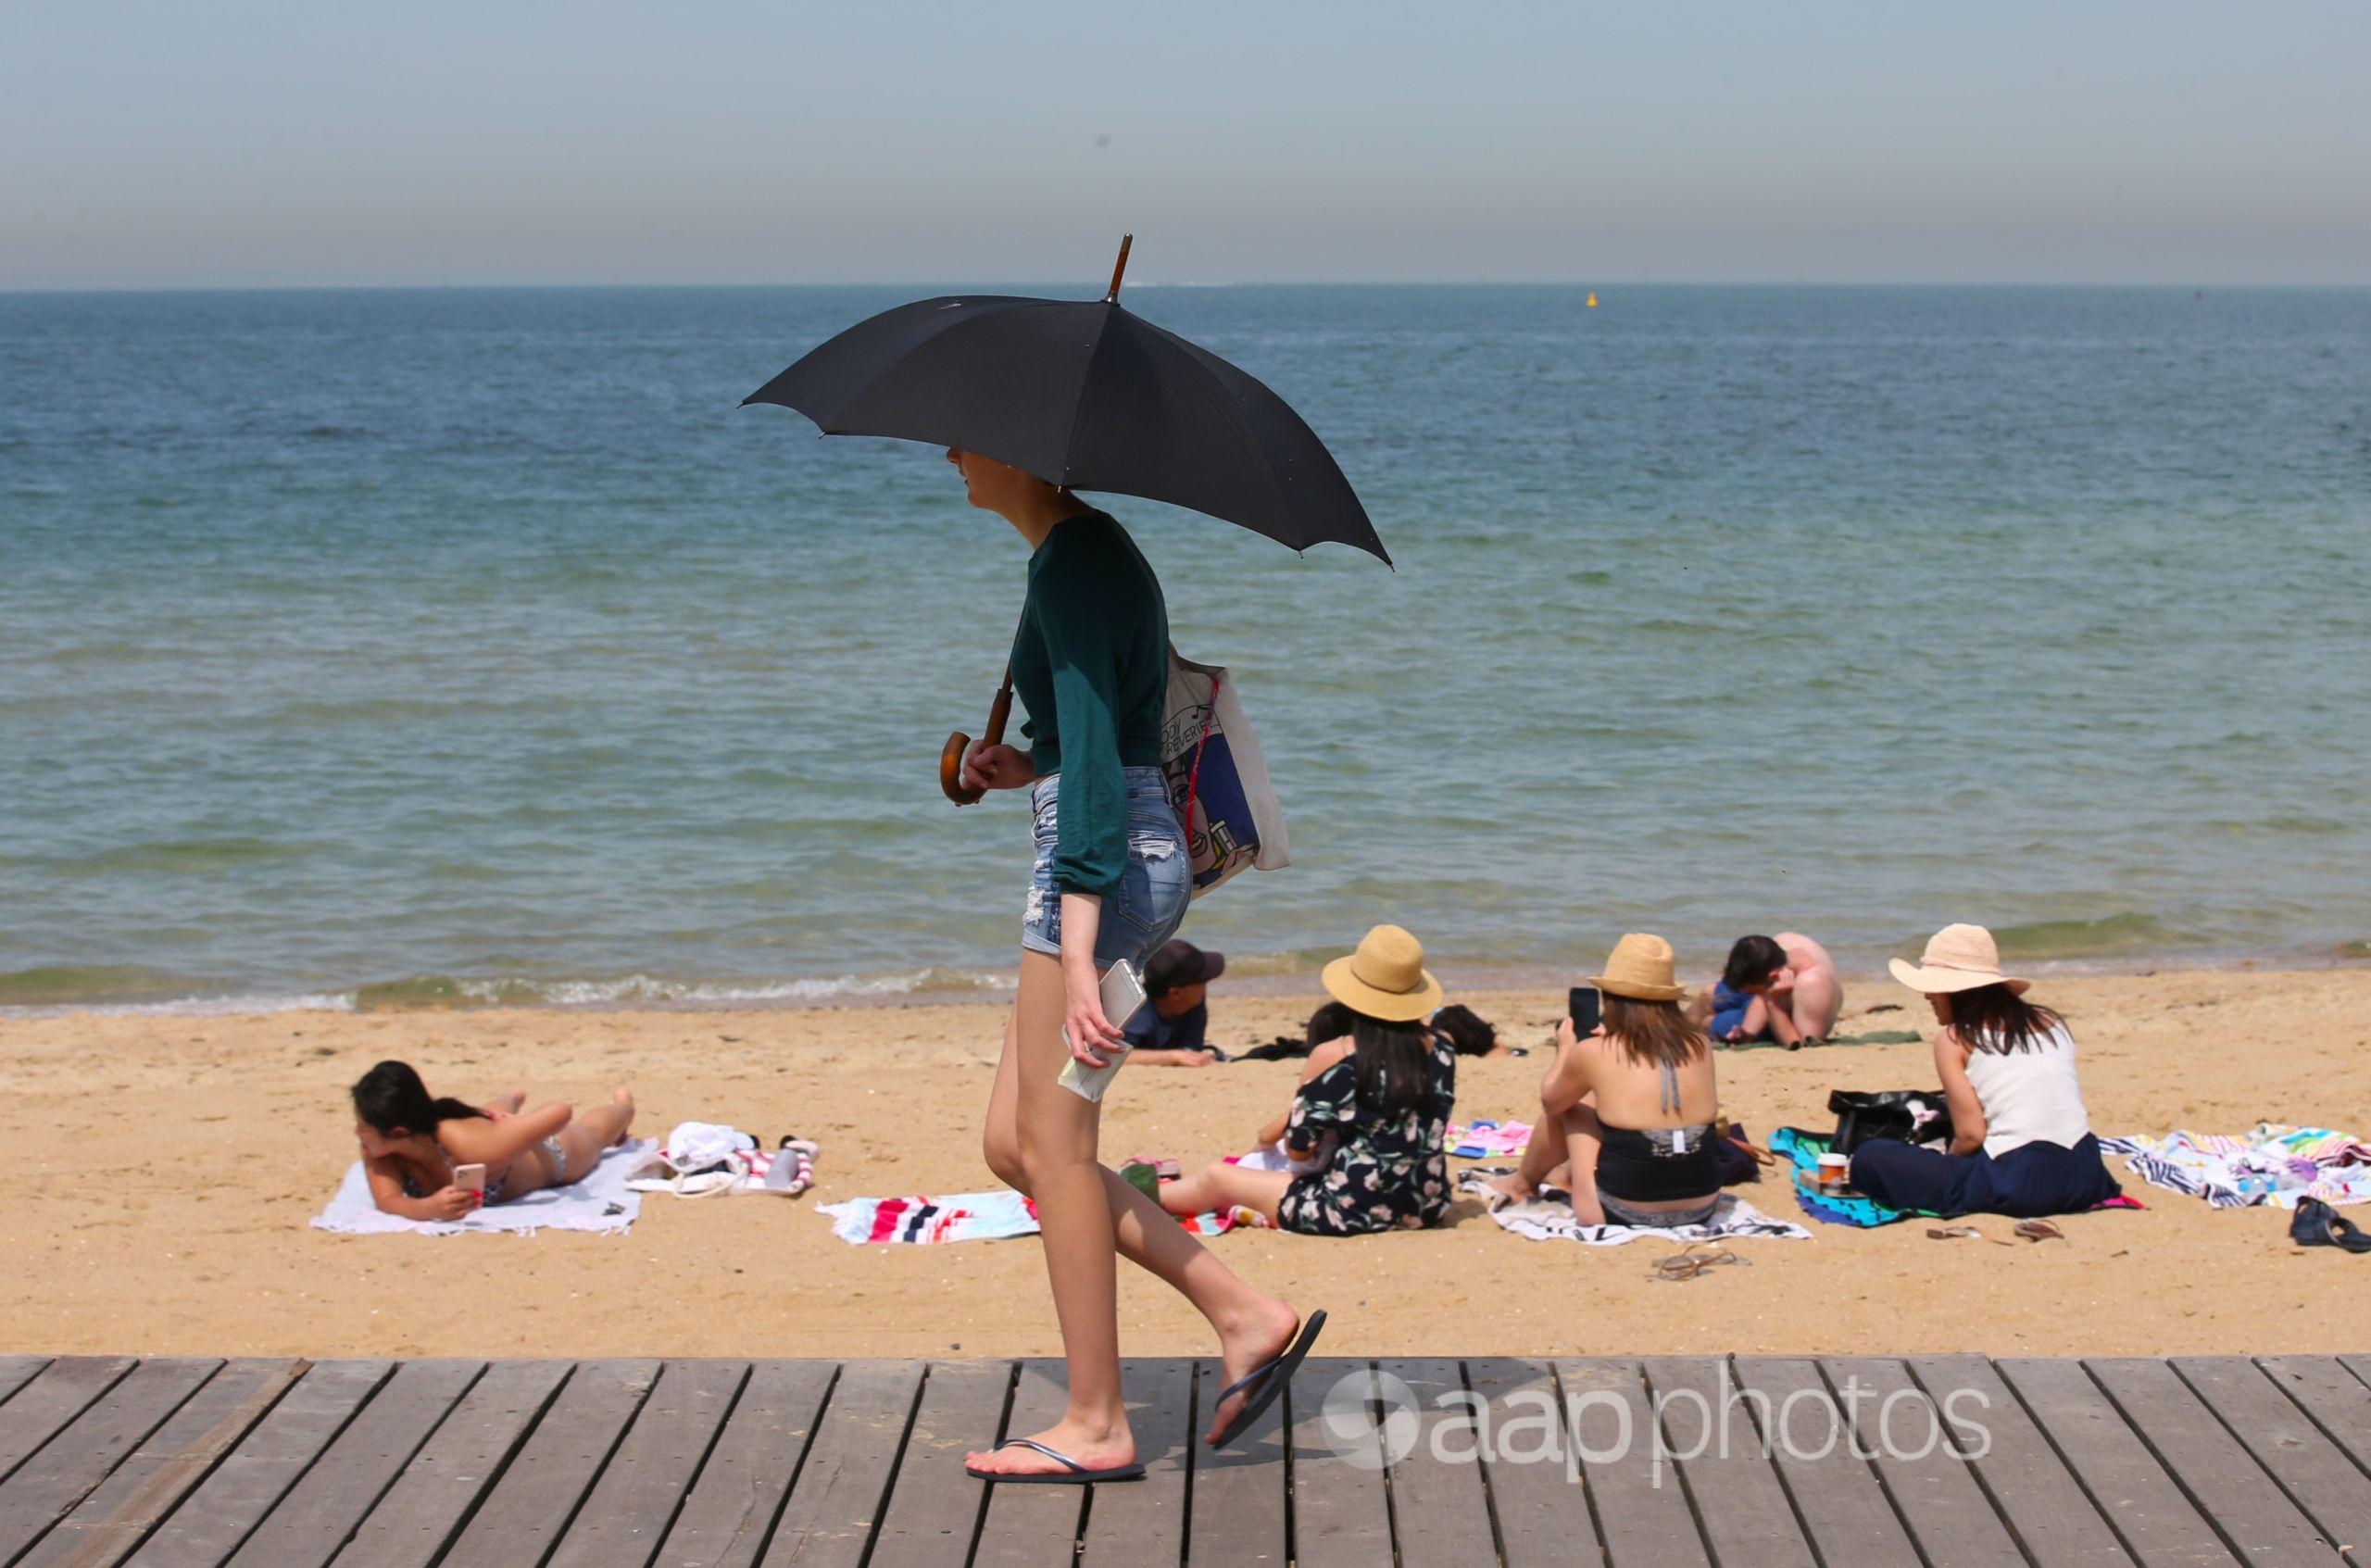 Hot weather in Melbourne